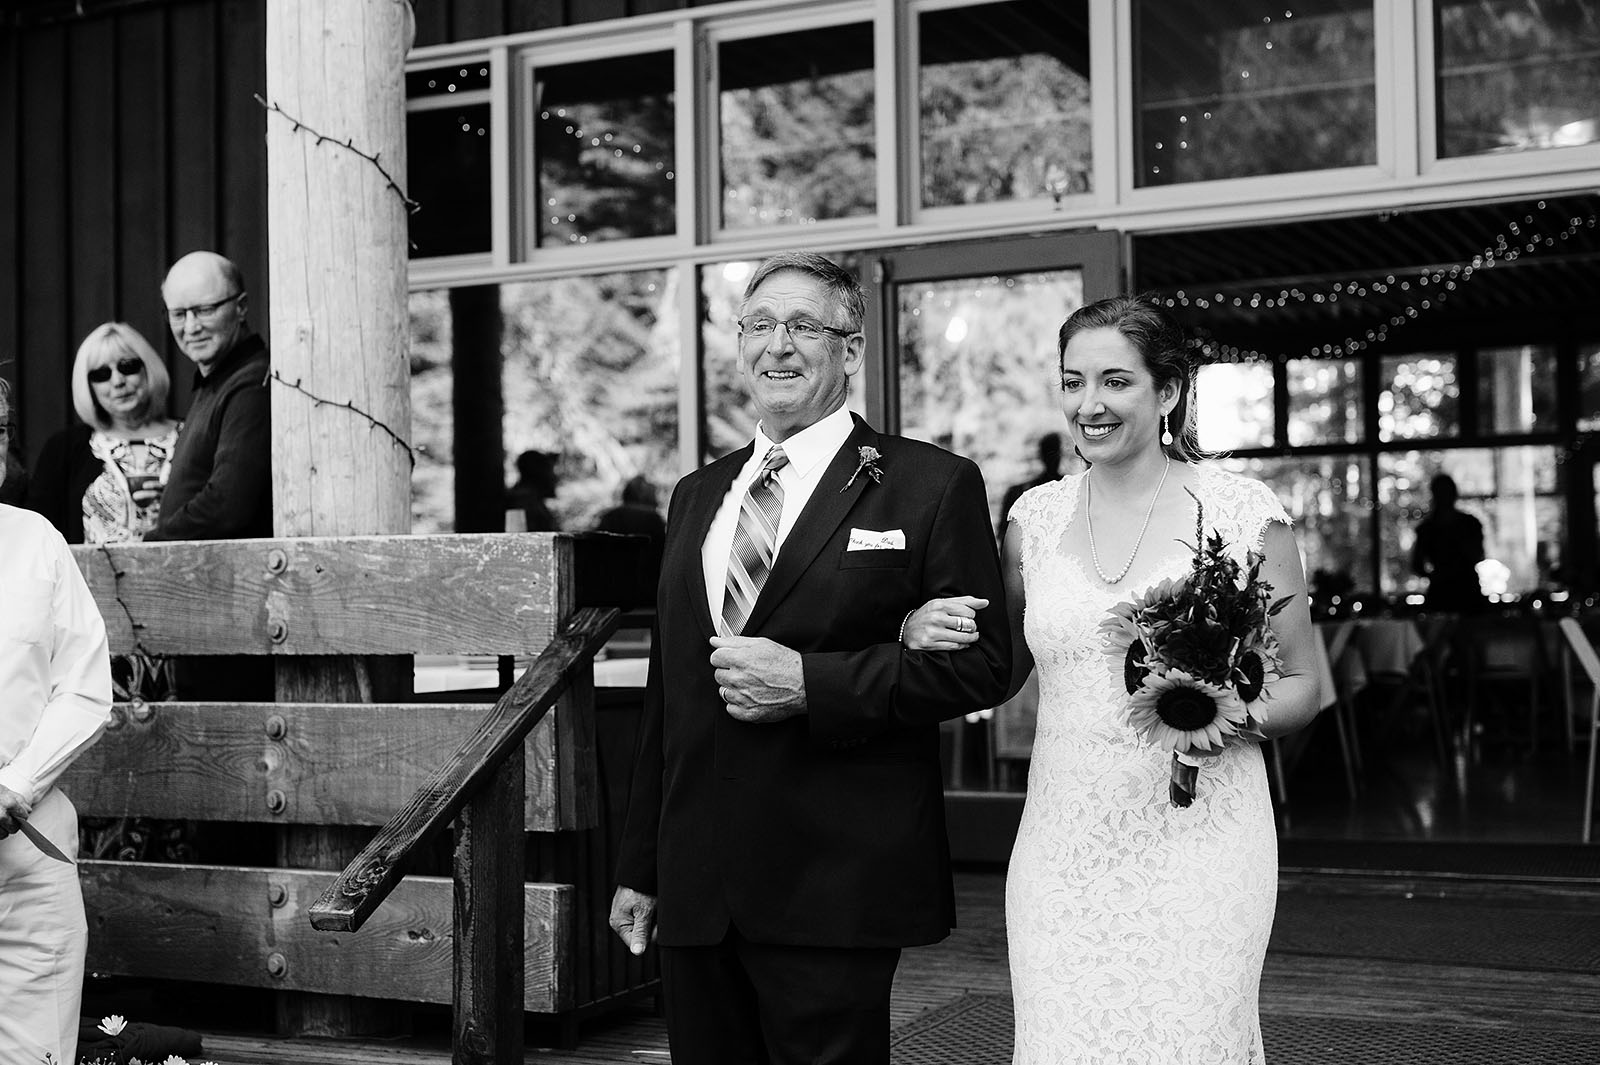 Emotional father walking his daughter down the aisle | Mazama Lodge Wedding